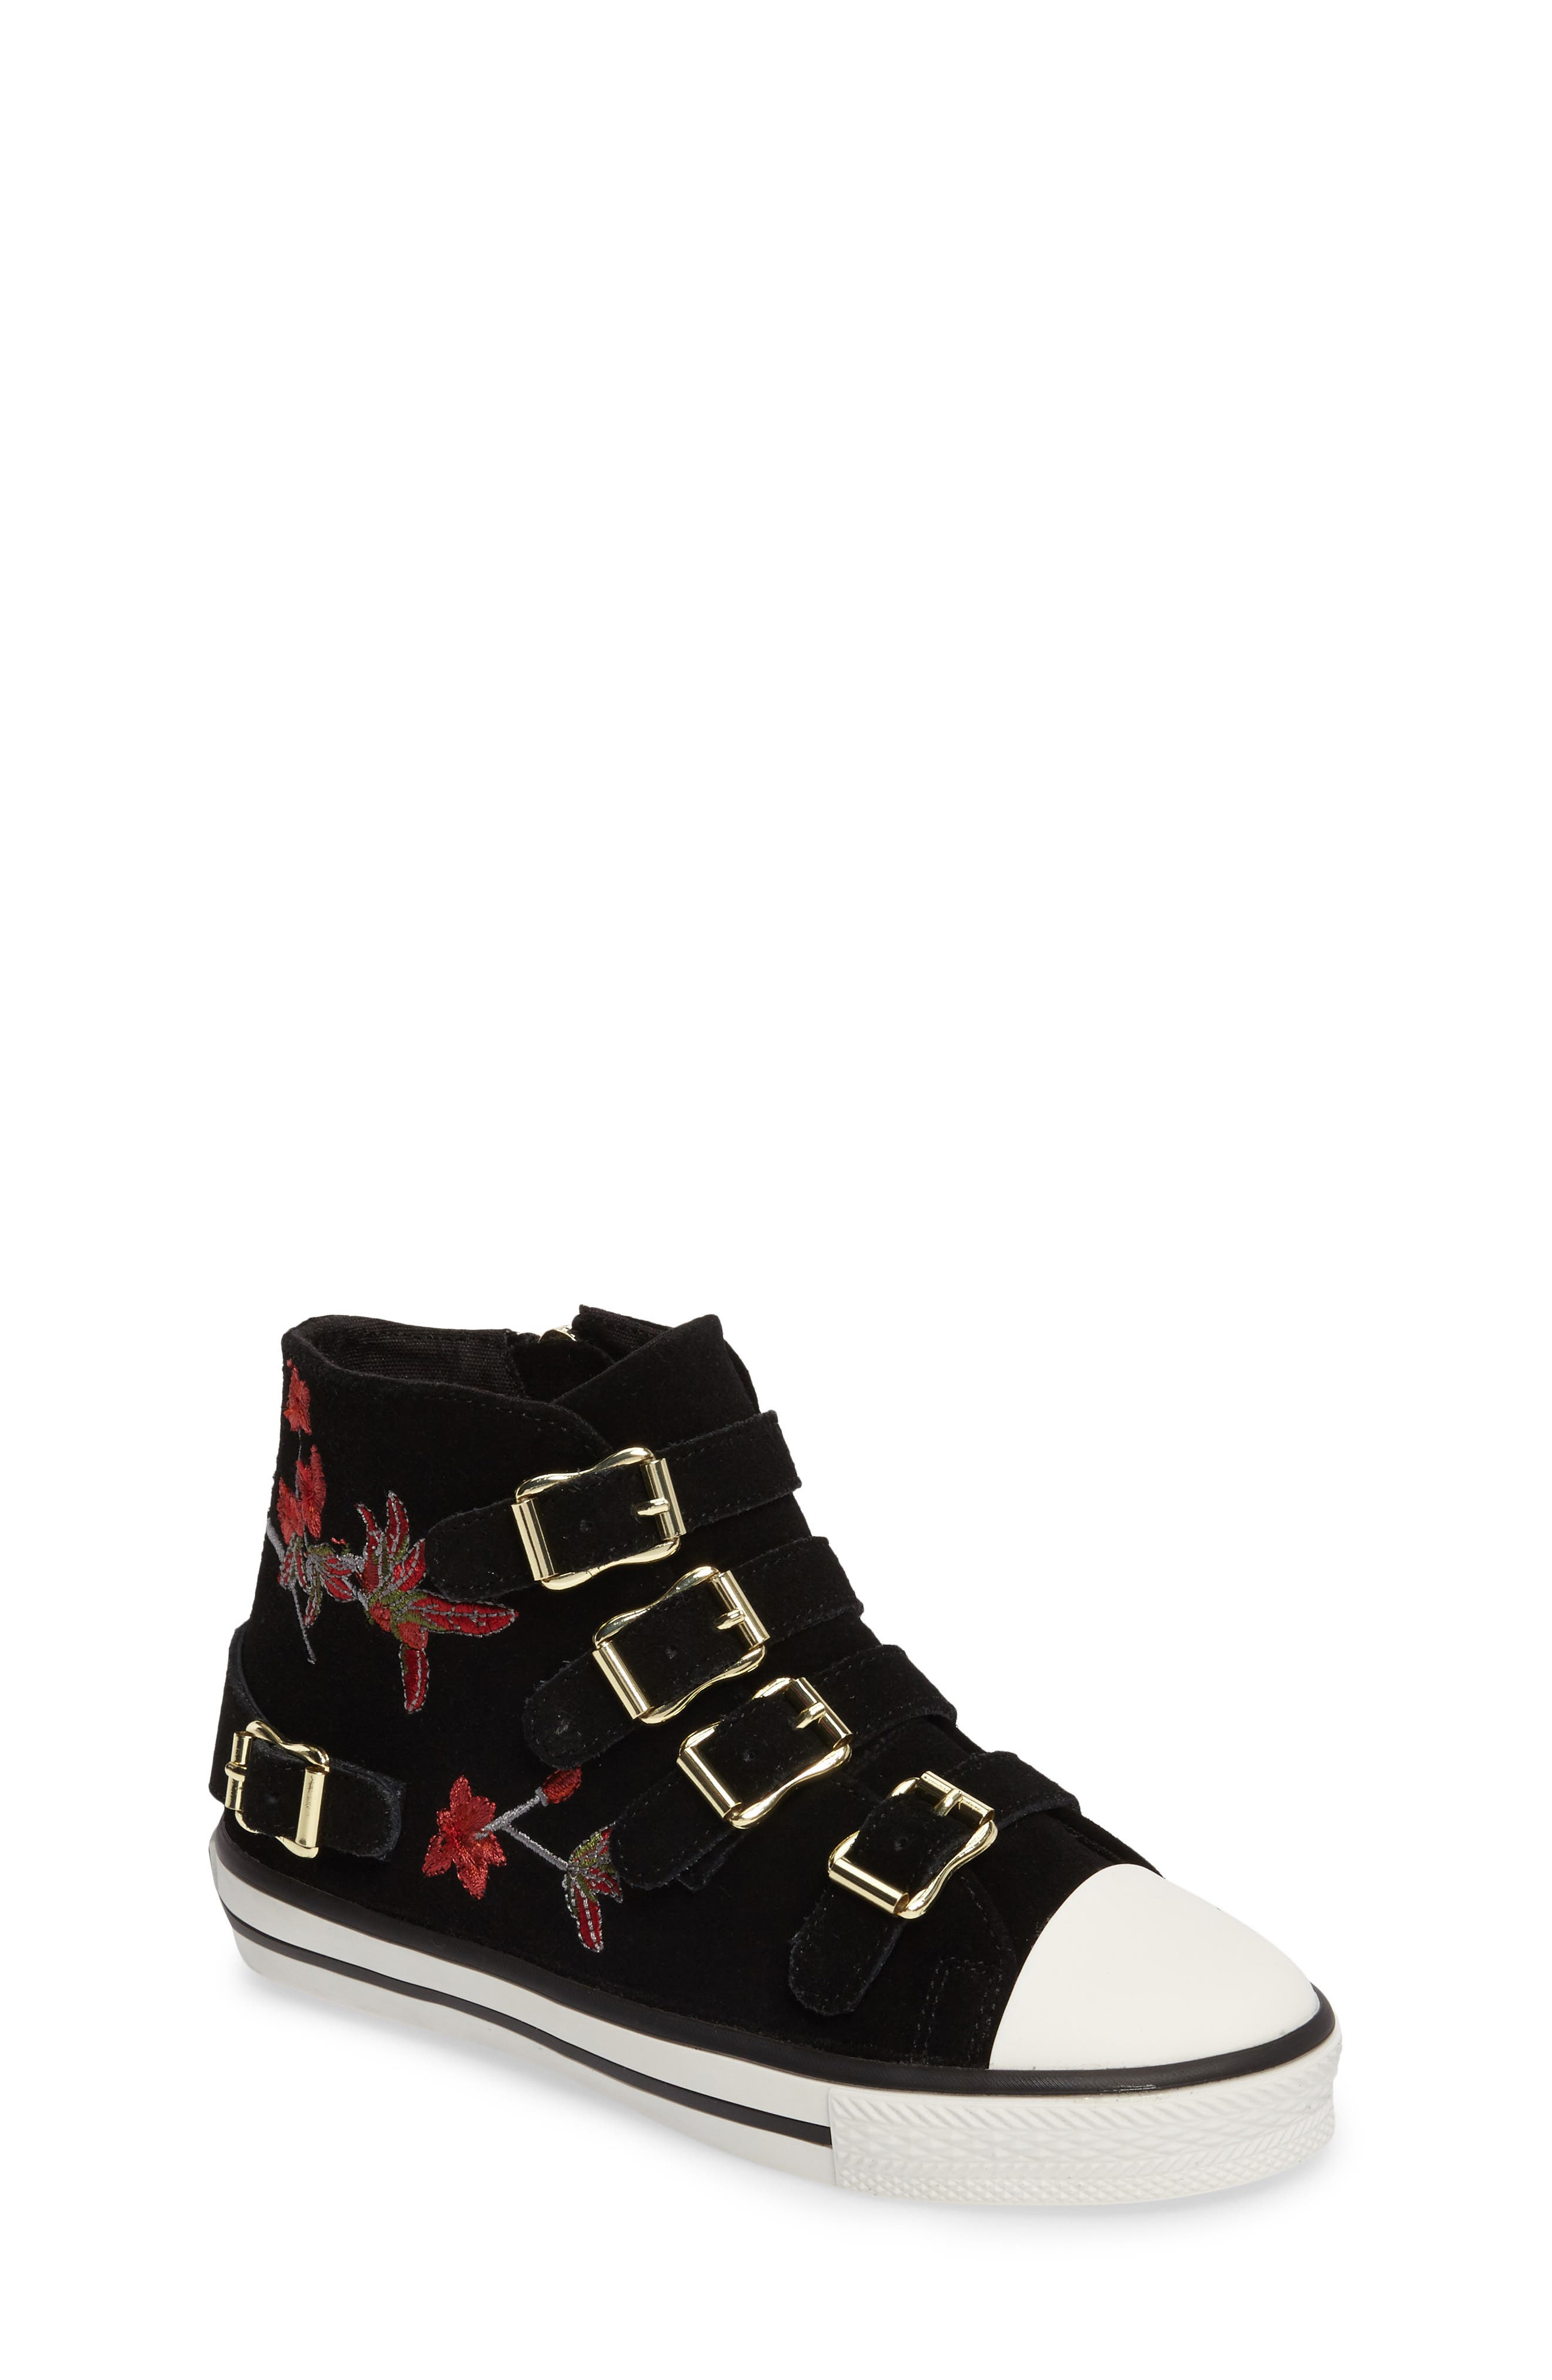 Vava Flowers Embroidered High Top Sneaker,                         Main,                         color, 001